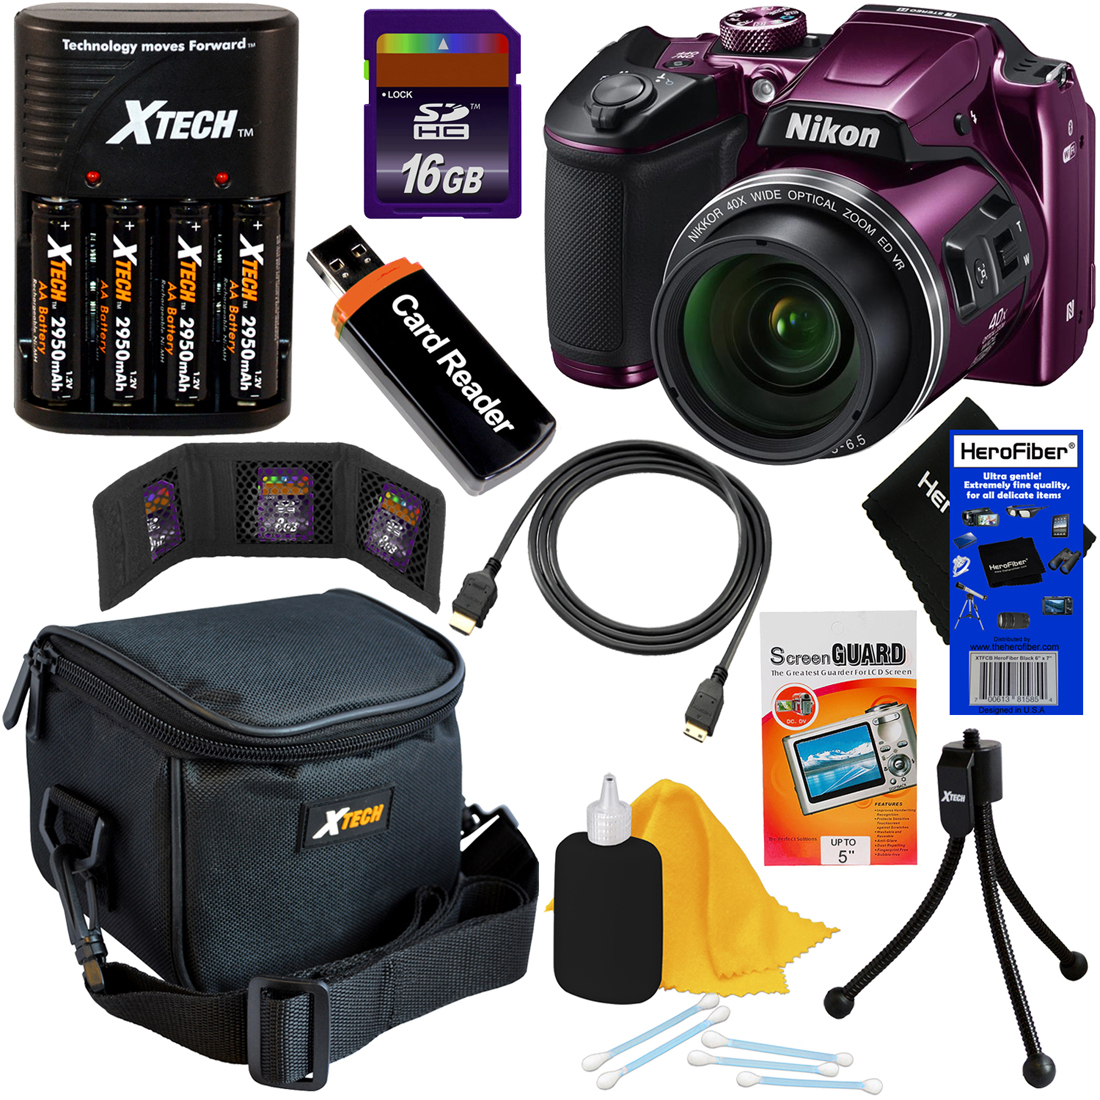 Nikon COOLPIX B500 16MP Wi-Fi, NFC Digital Camera w/40x Zoom & HD Video (Plum) + 4 AA Batteries with Charger + 9pc 16GB Accessory Kit w/ HeroFiber Cleaning Cloth